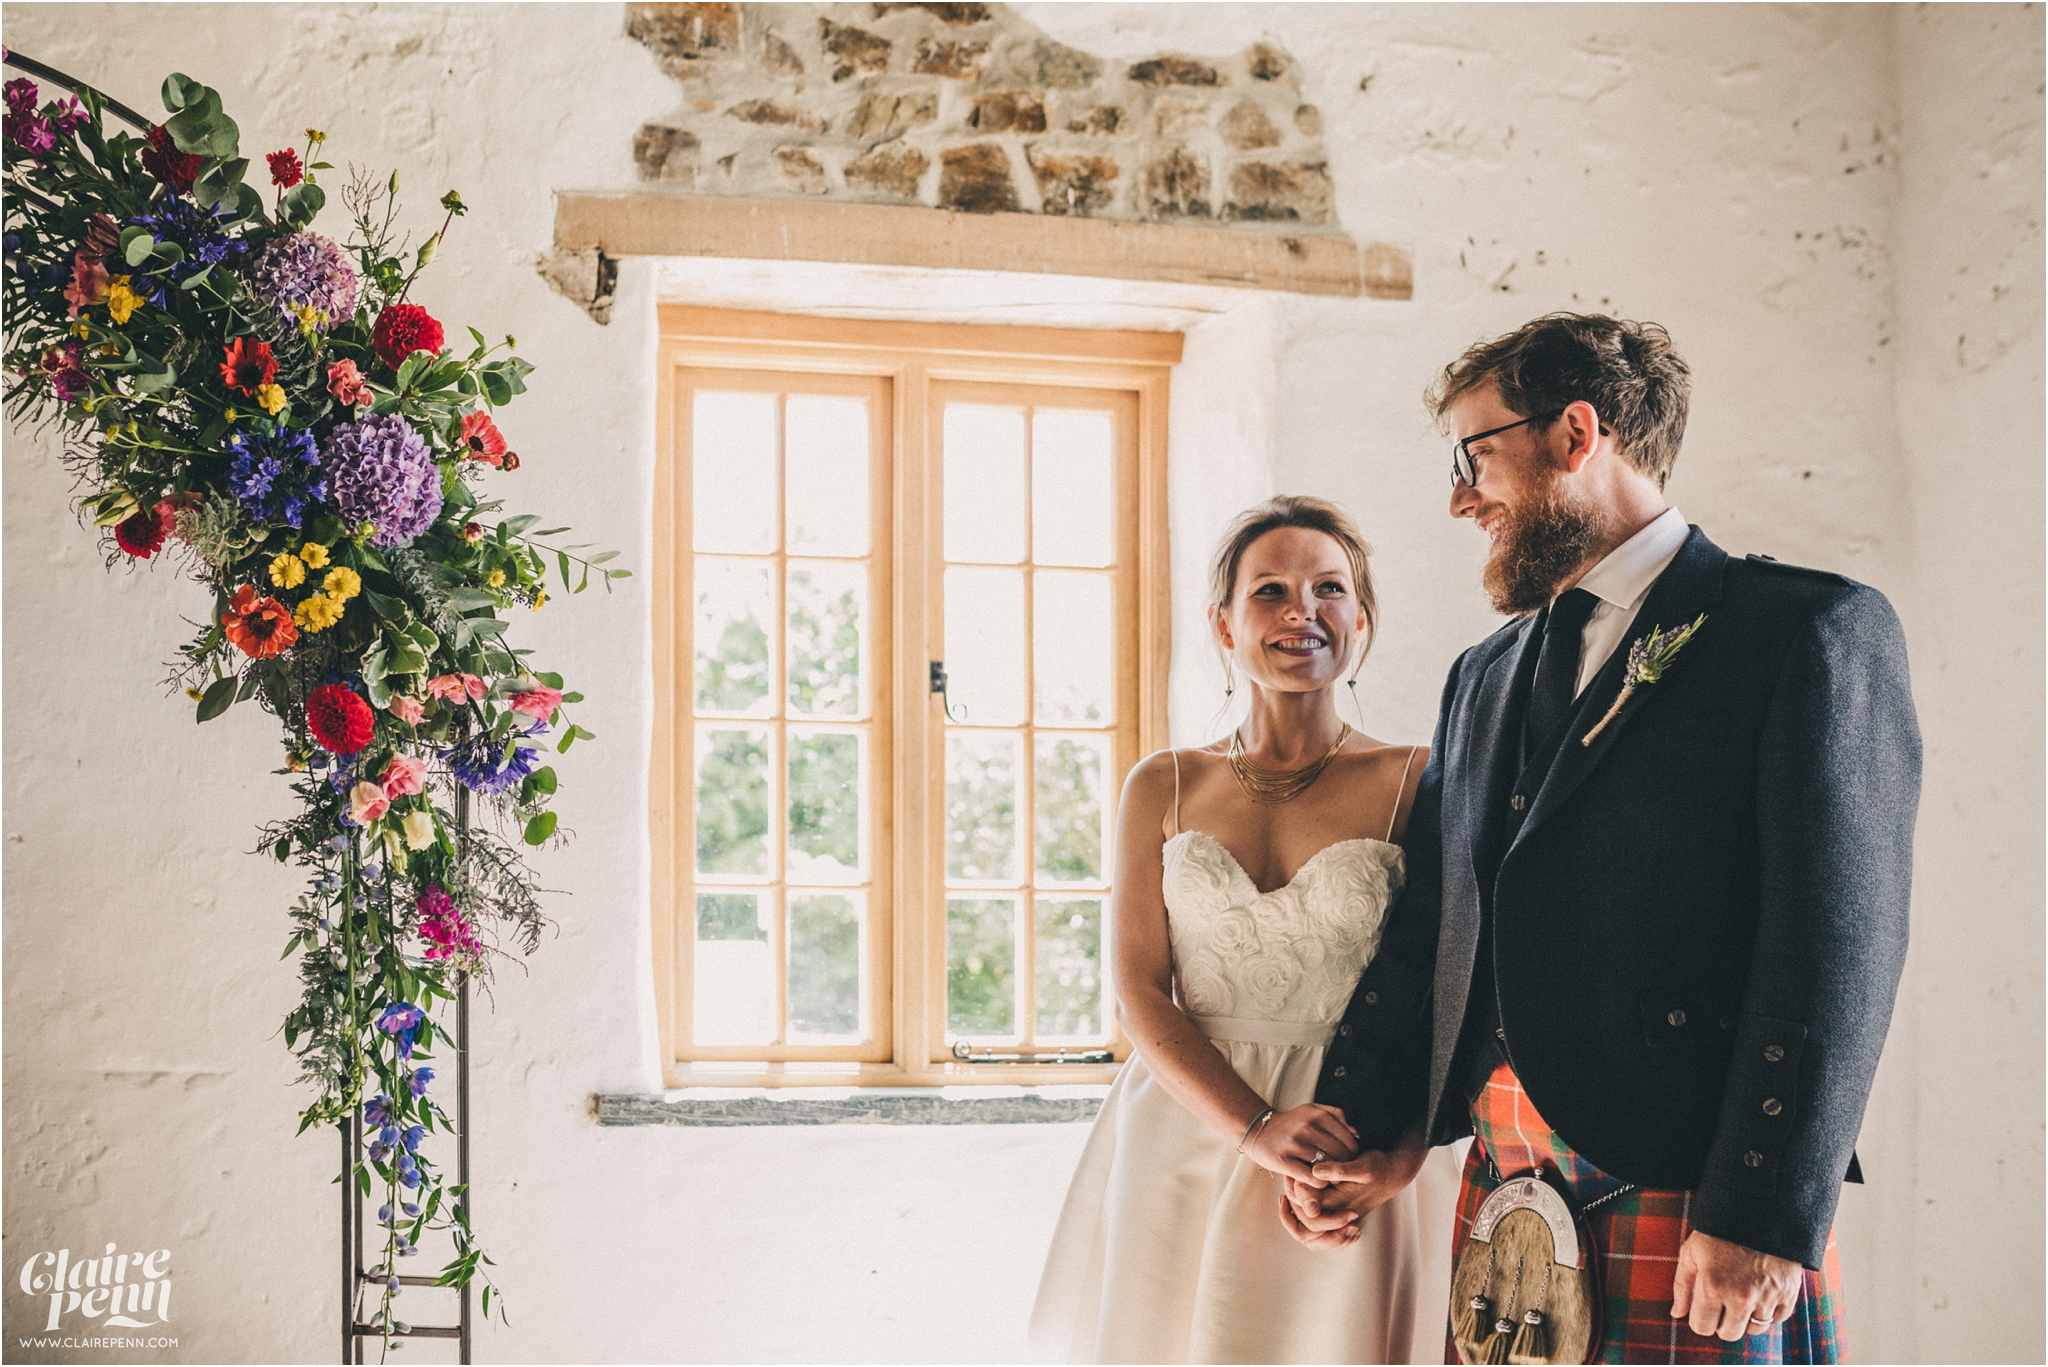 Launcells Barton barn wedding Launceston Bude Cornwall_0029.jpg